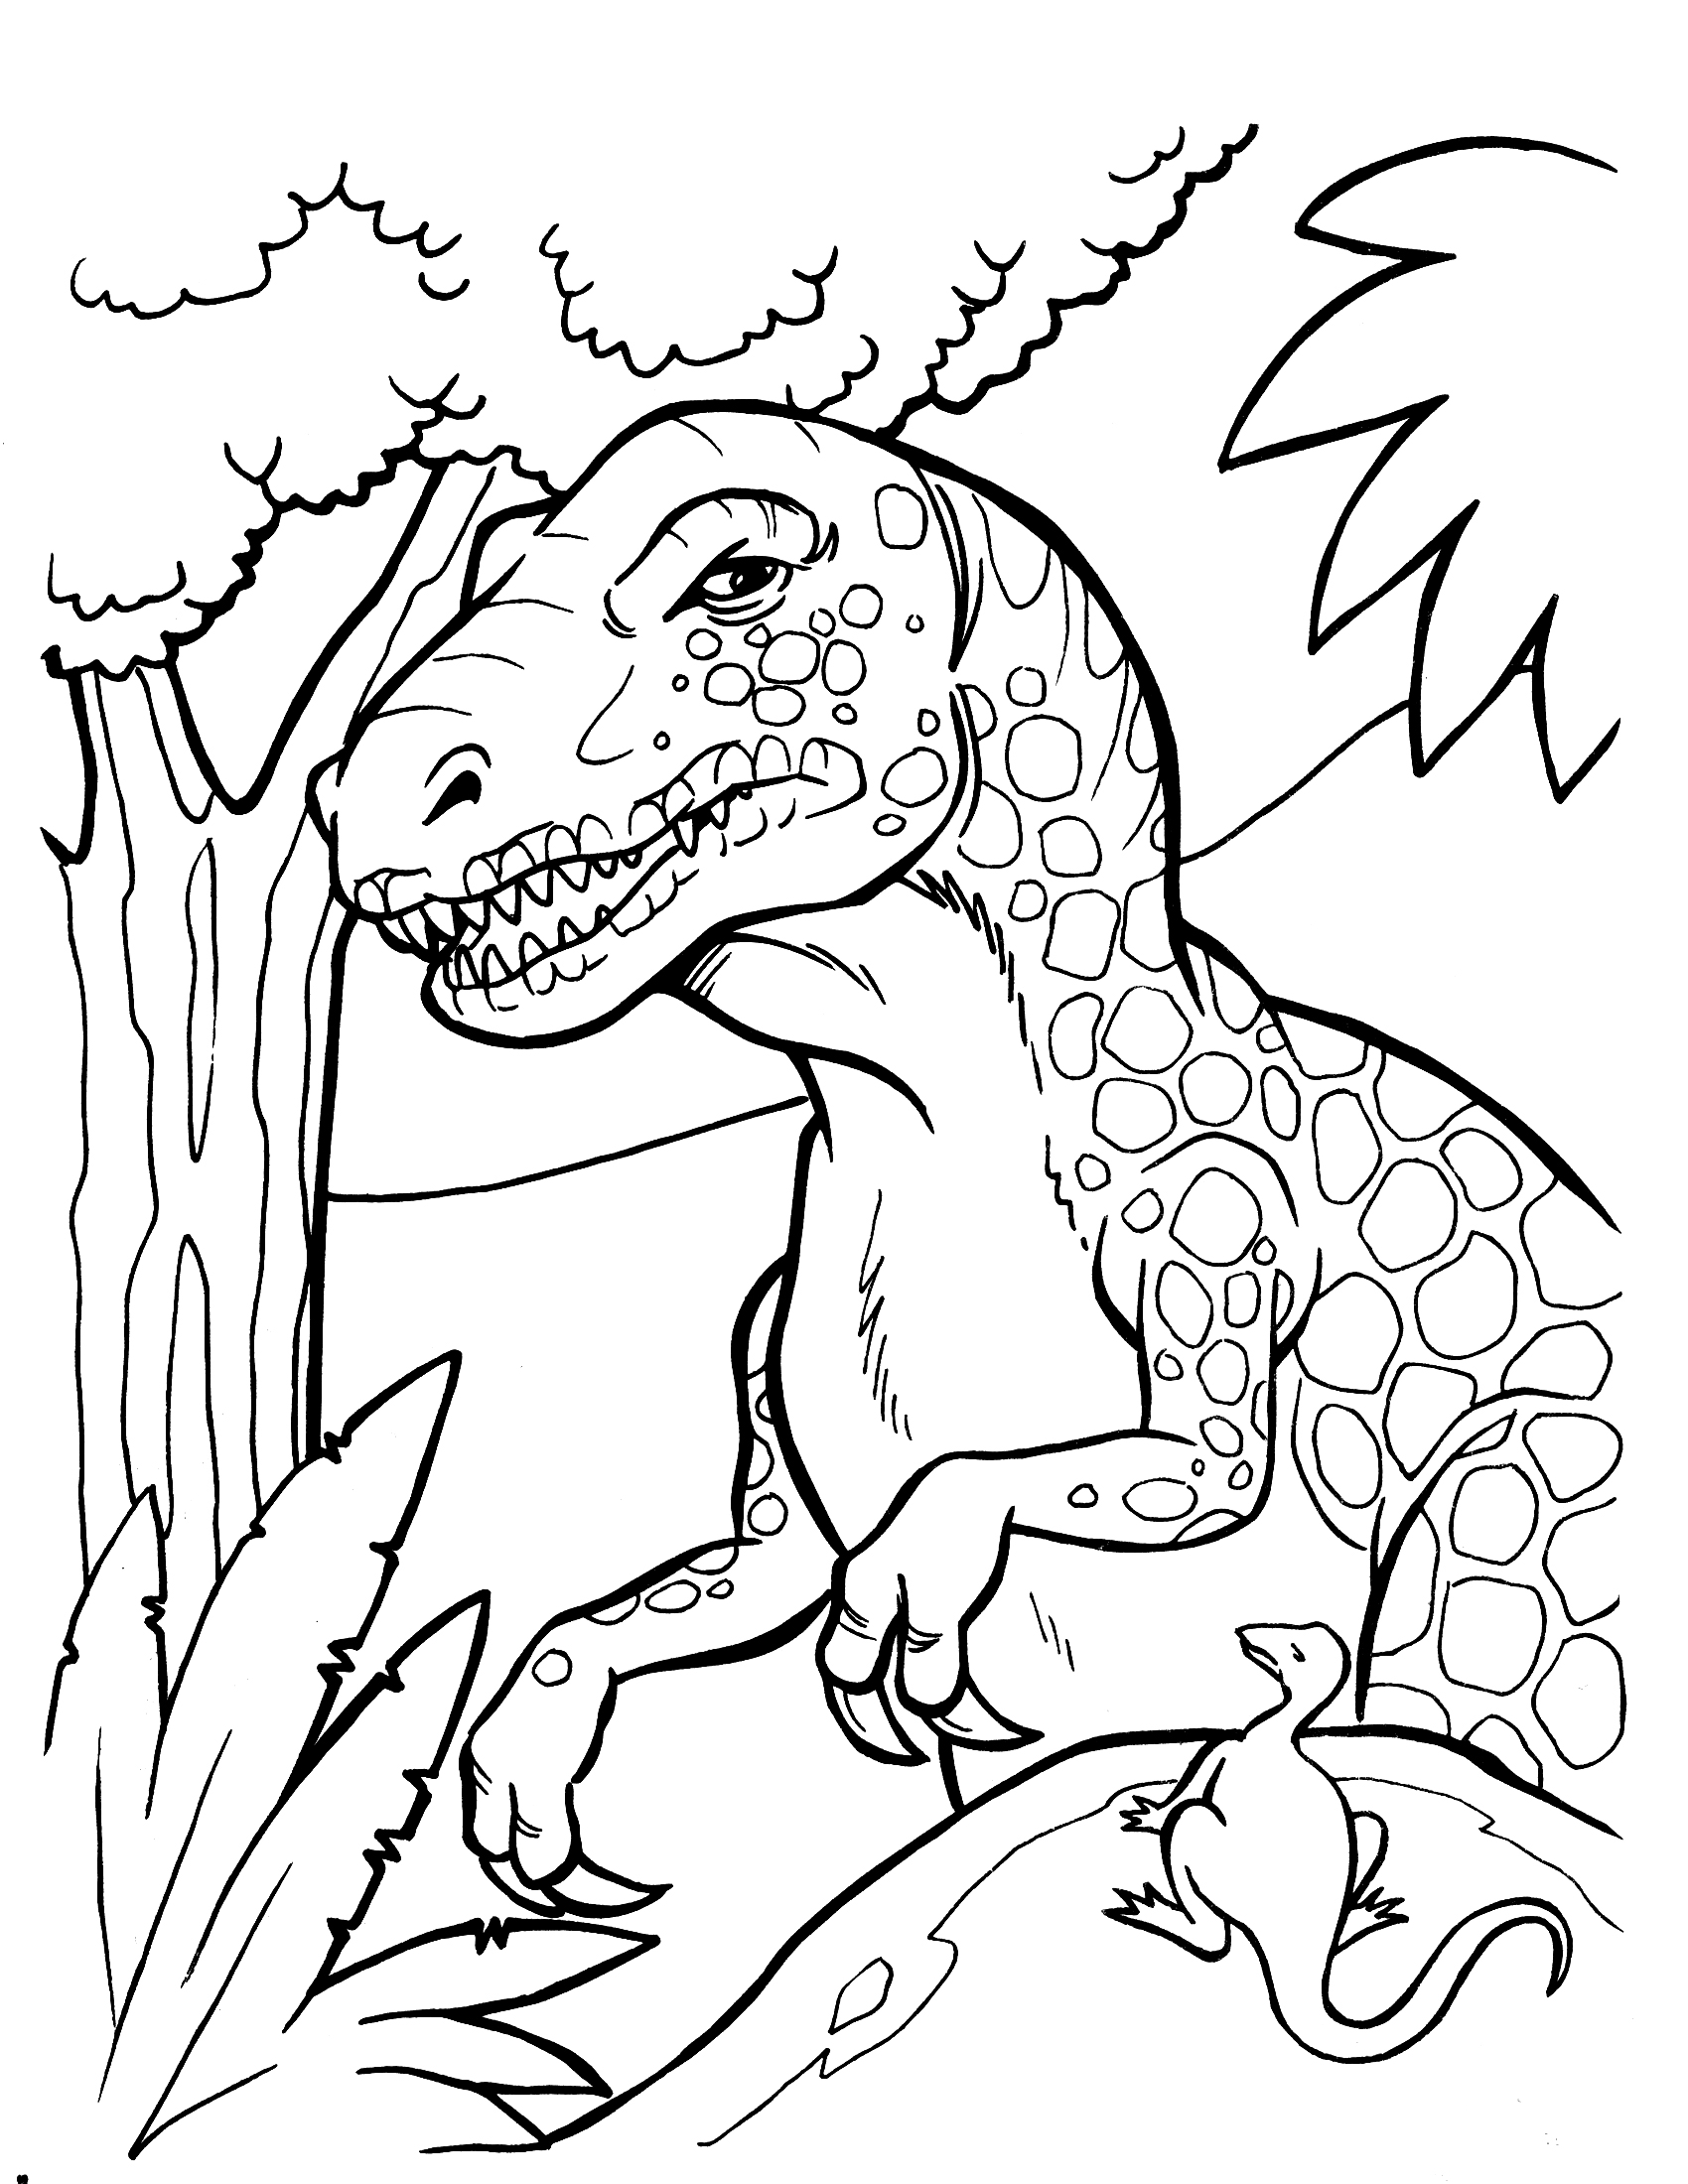 Dinosaur coloring pages 360coloringpages for Printable coloring pages dinosaurs